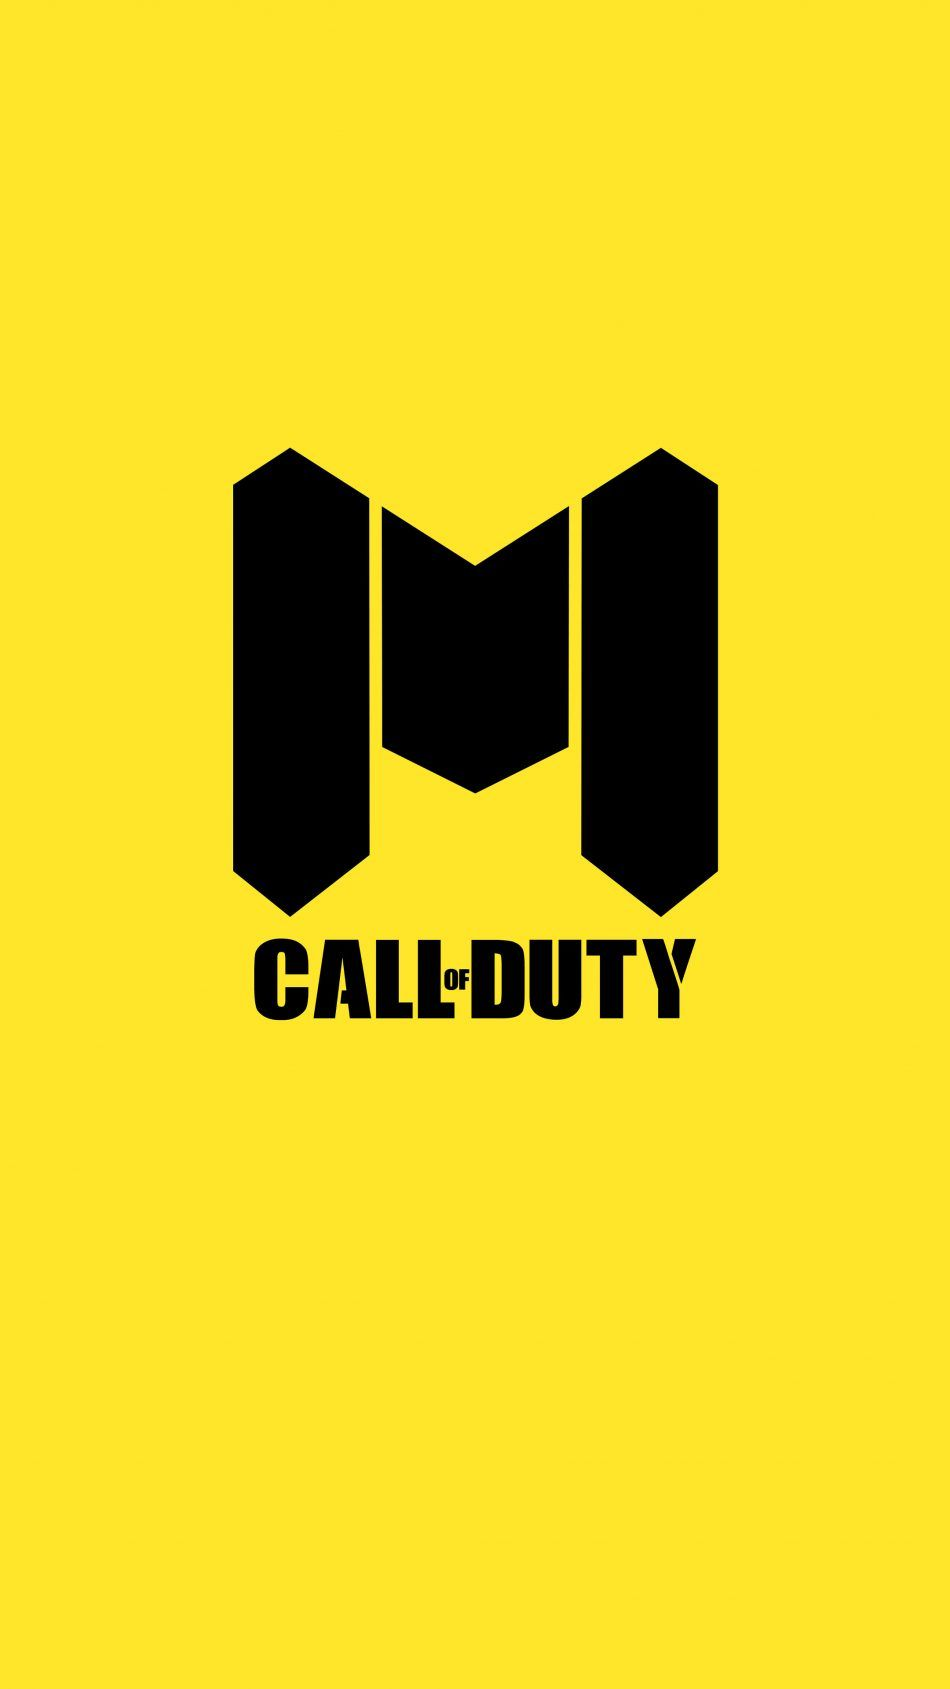 call of duty mobile logo black background